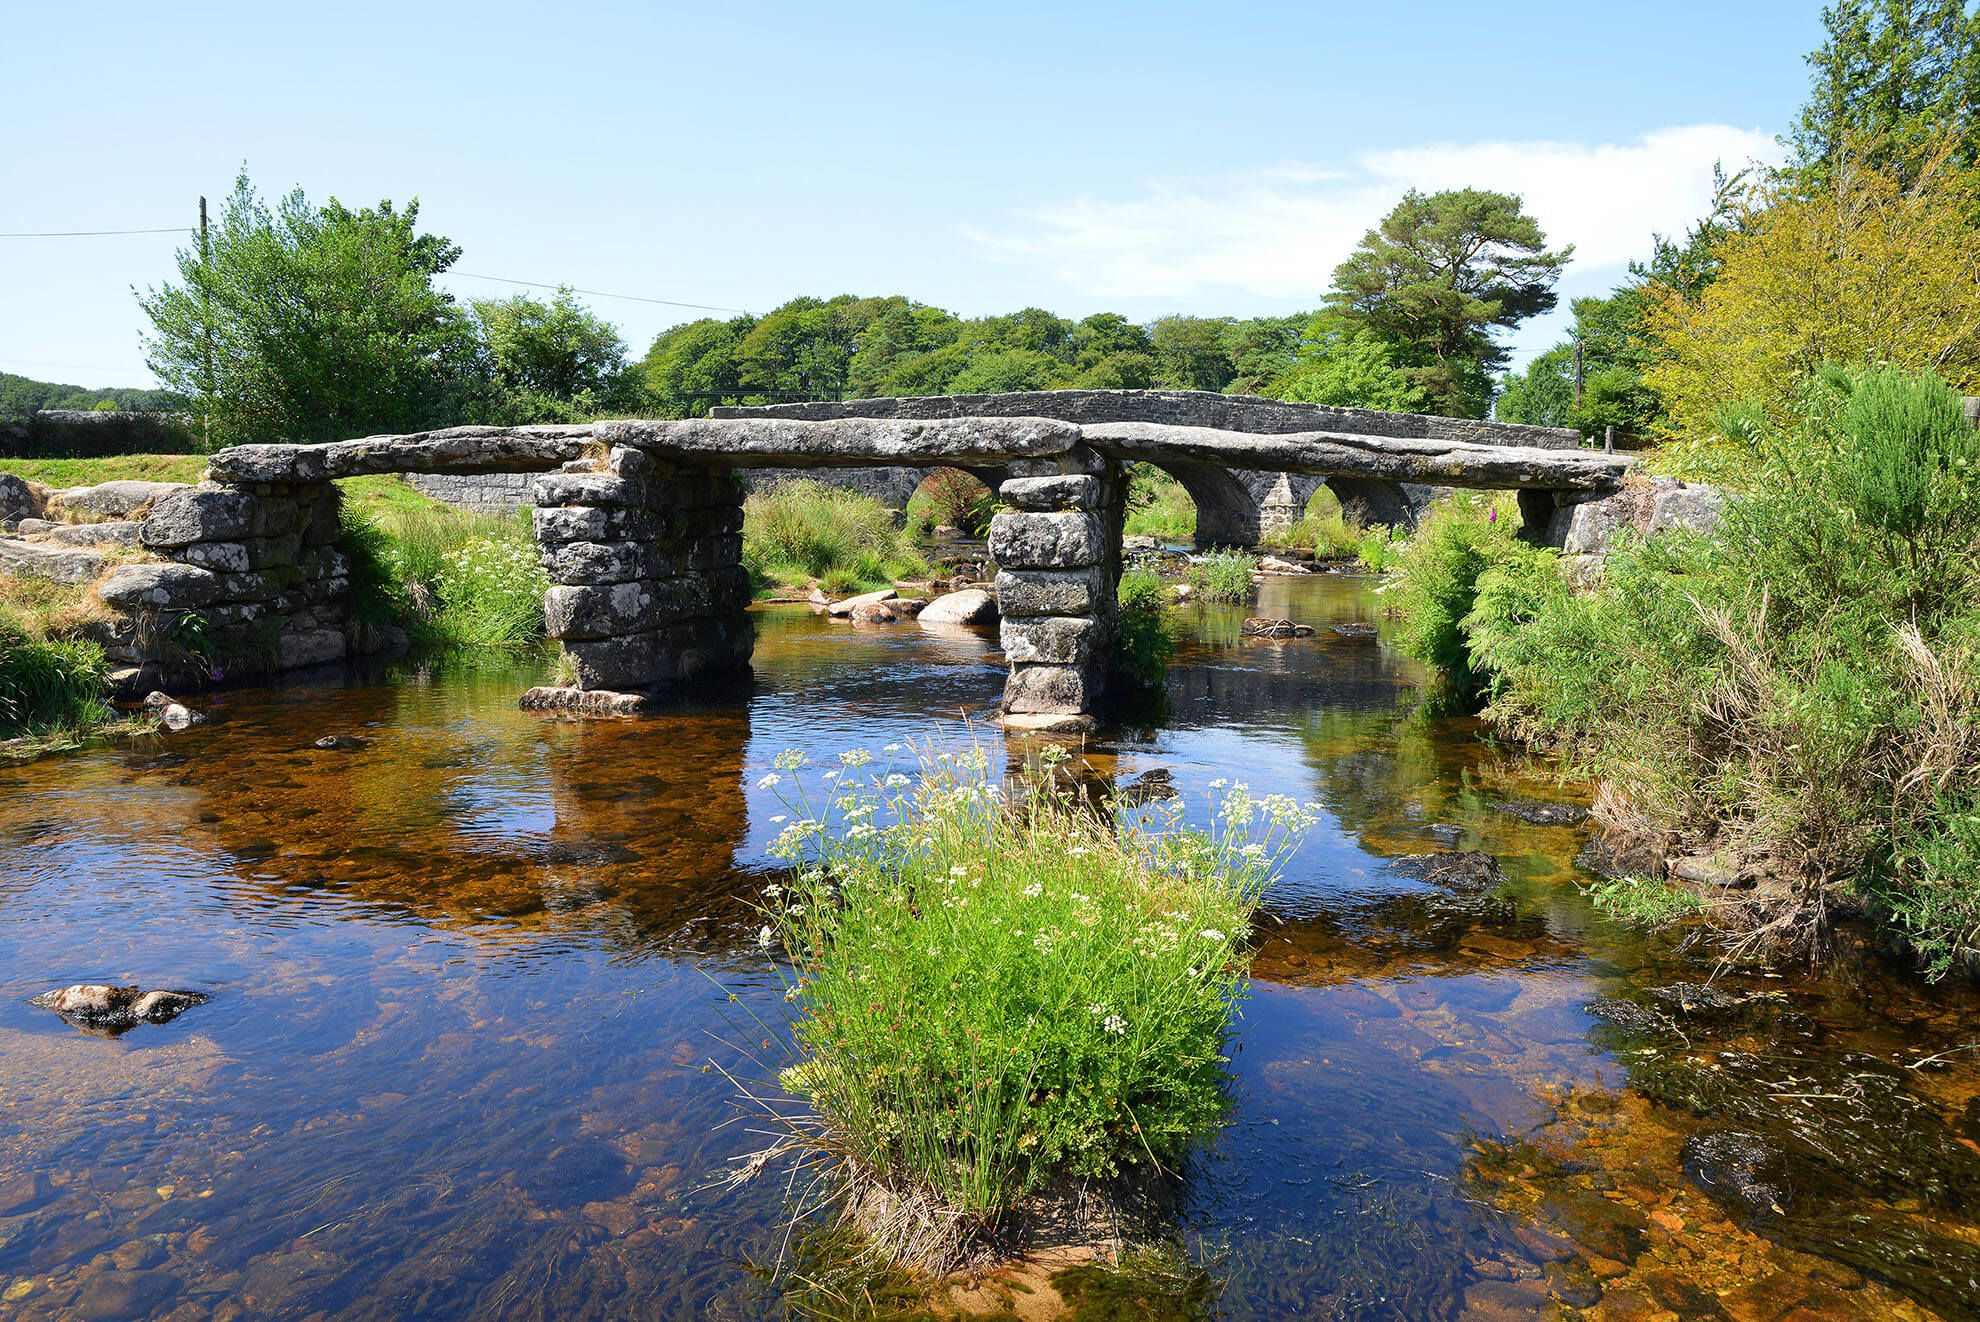 Dartmoor National Park is easily accessible and makes a great day out